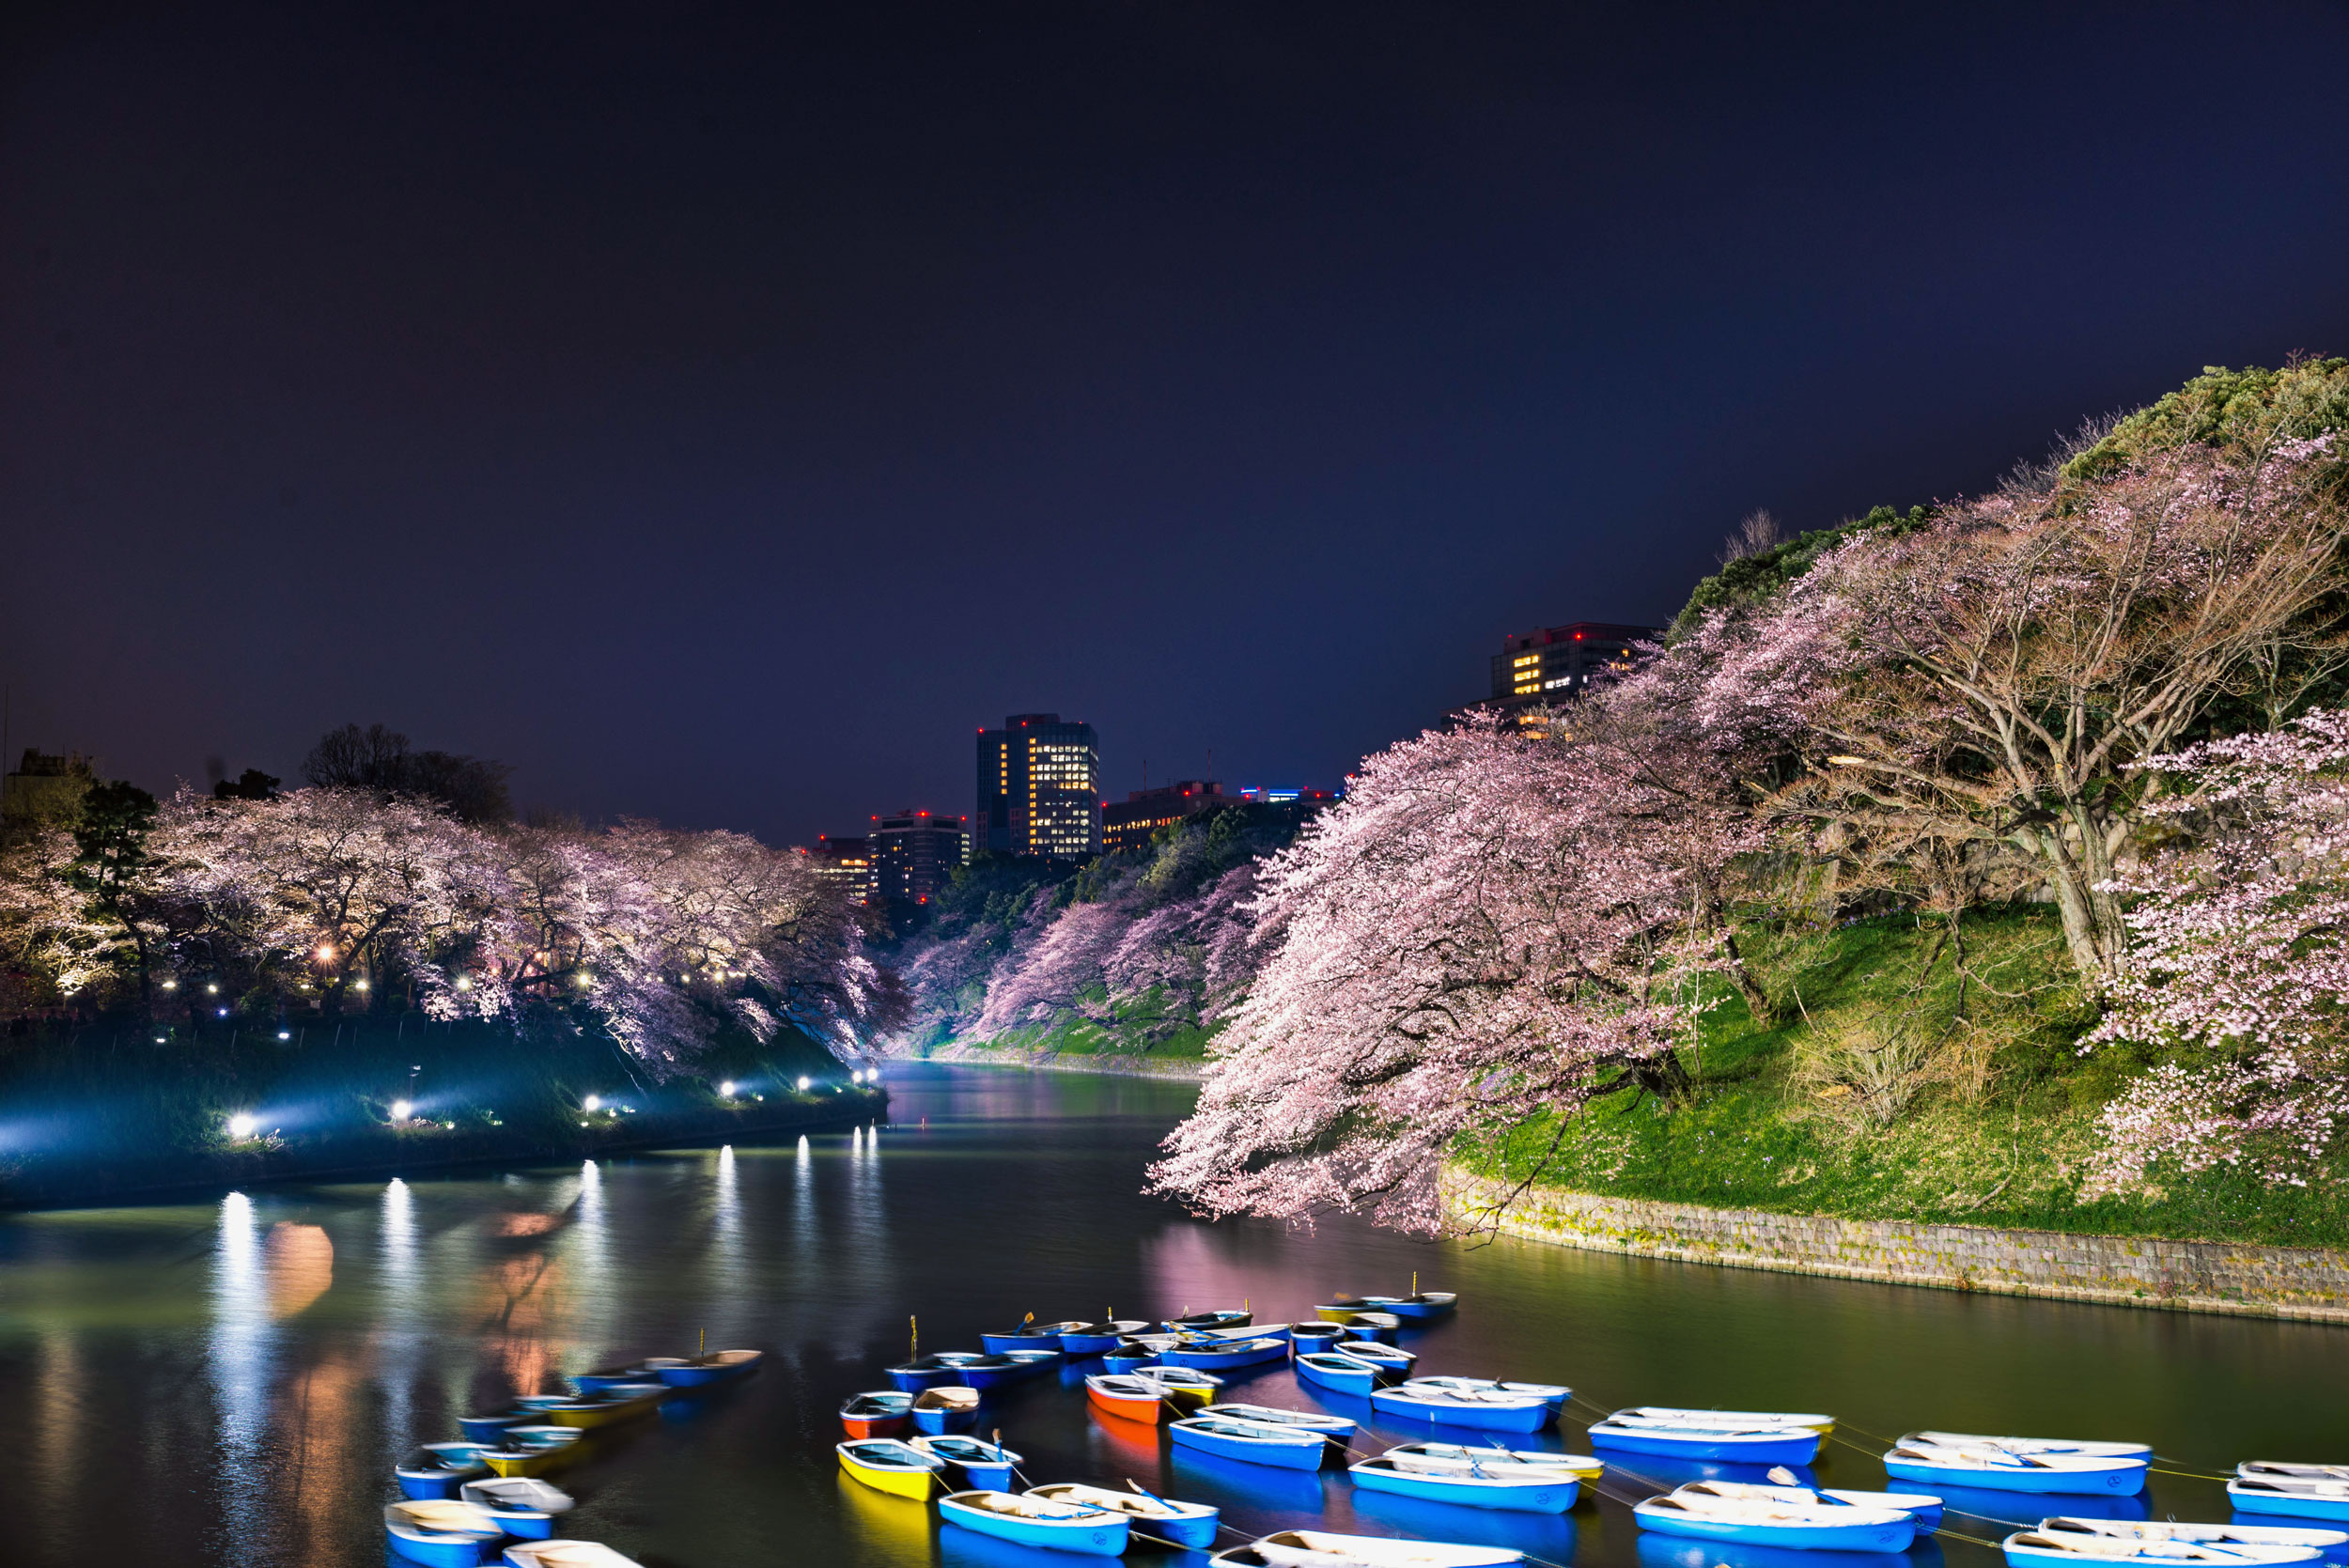 A night scene of cherry blossoms lining the moat at Chidorigafuchi